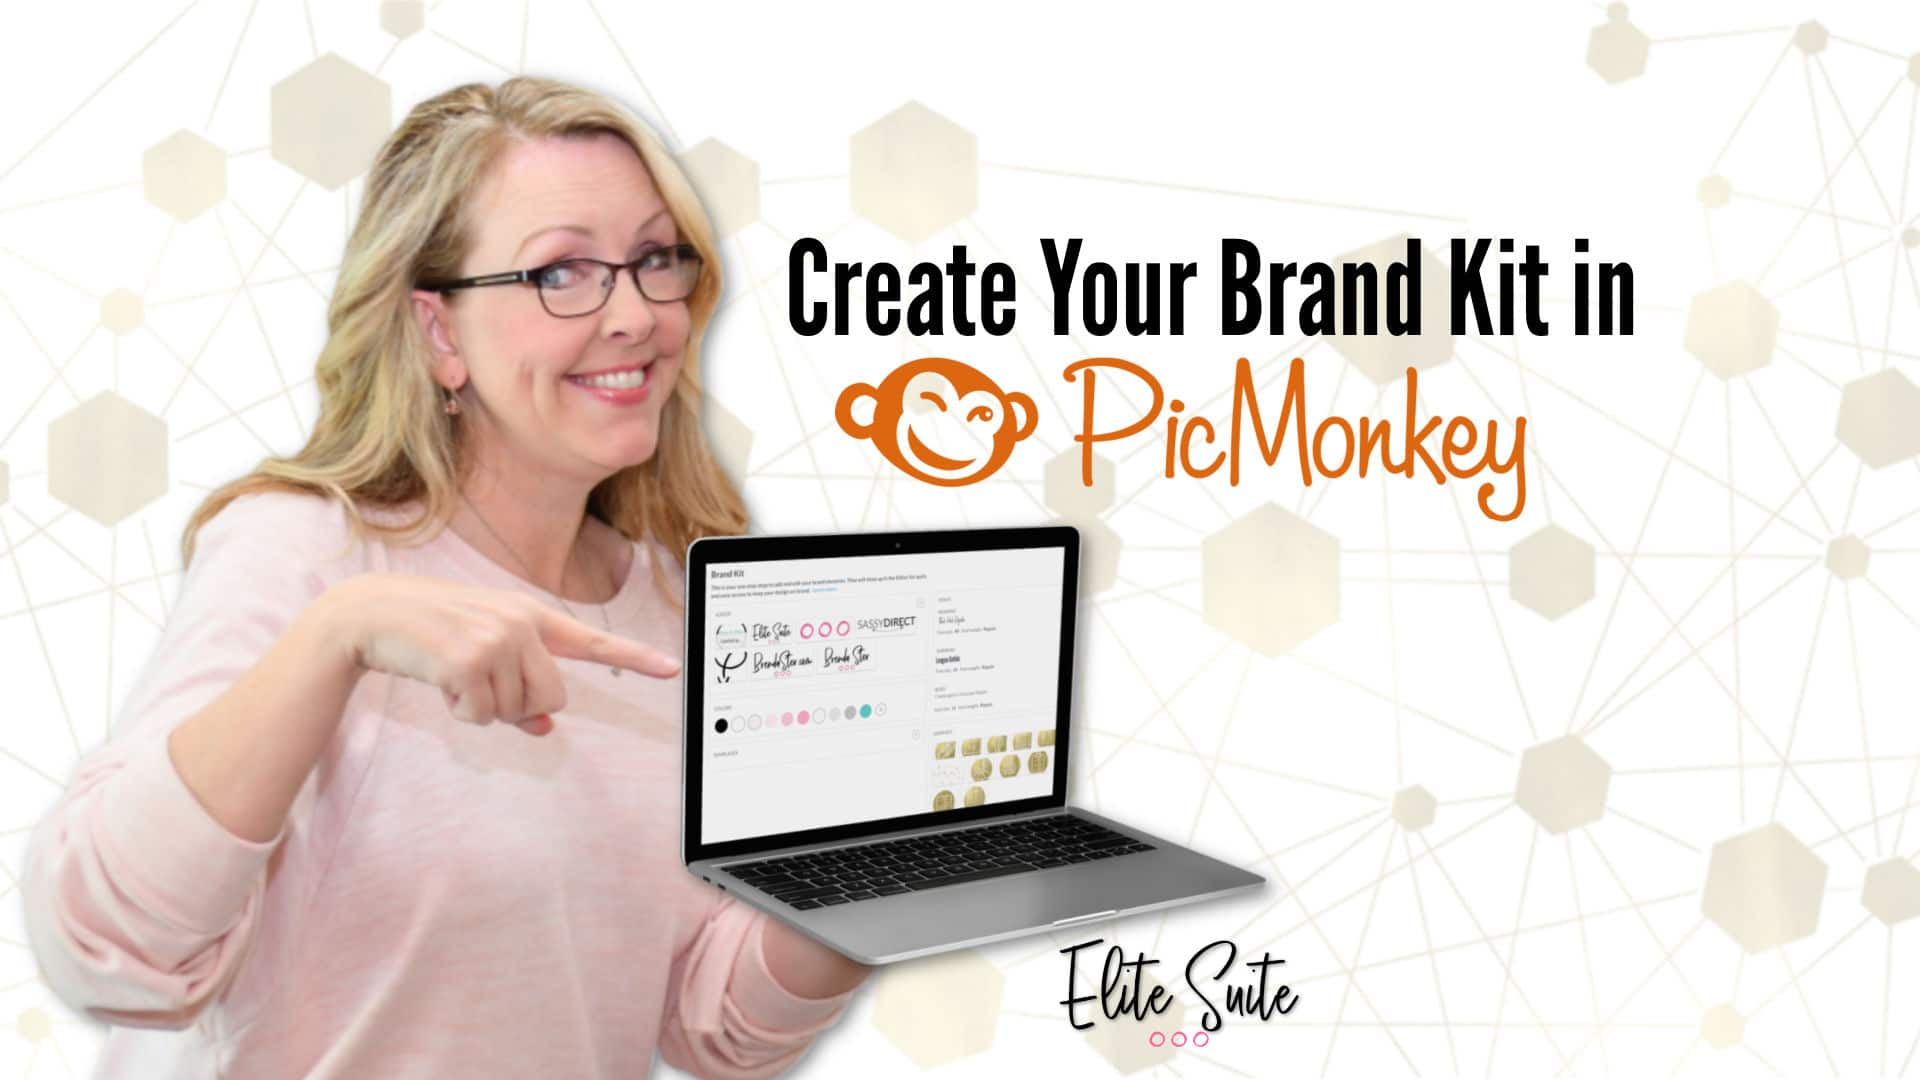 Creating Your Brand Kit in PicMonkey - Masterclass Title overlay